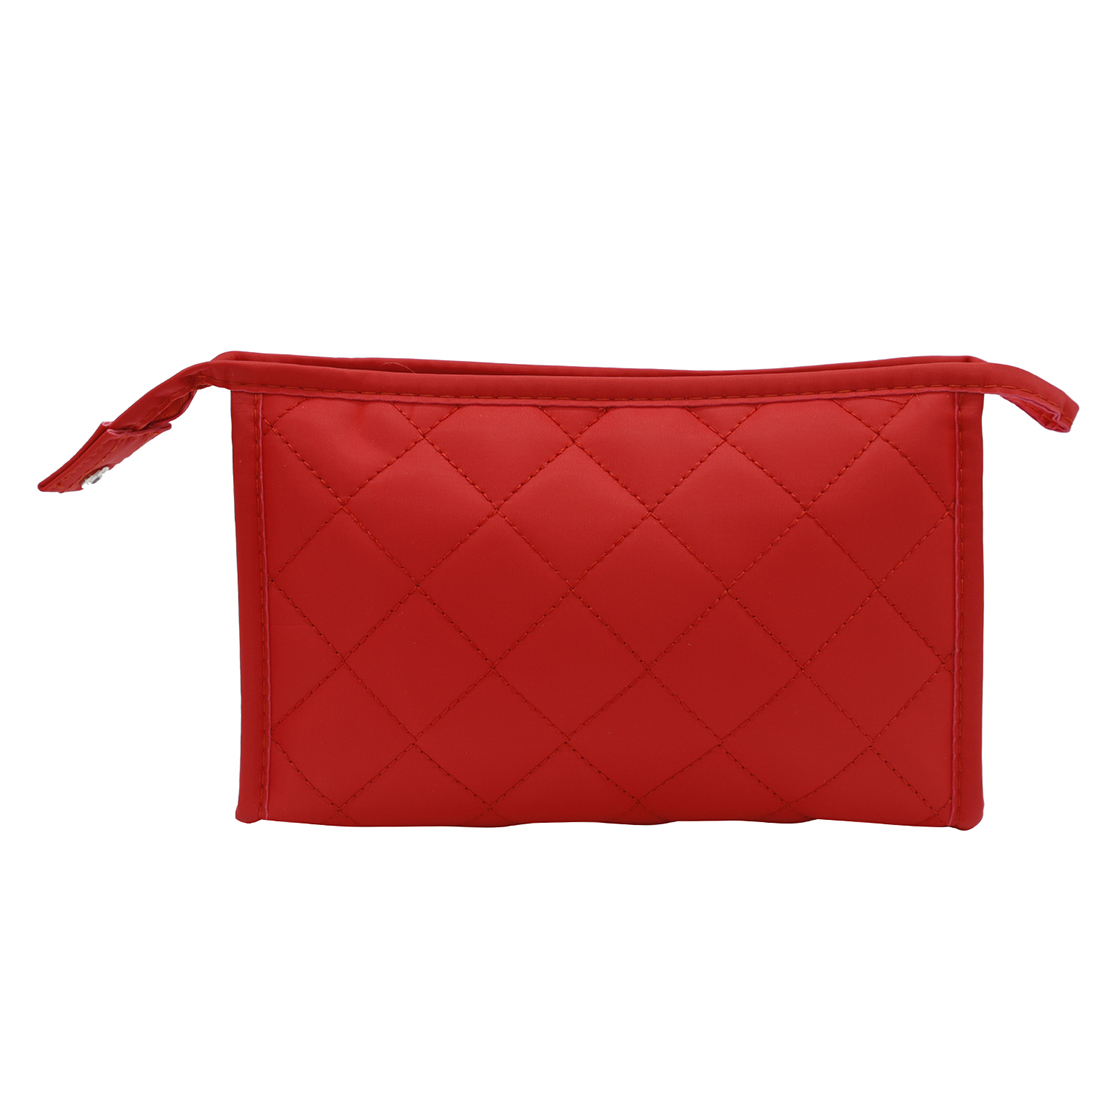 NFI essentials Solid Color Cushioned Cosmetics Pouch Vanity Jewellery Pouch Stationery Pencil Case Travel Pouch